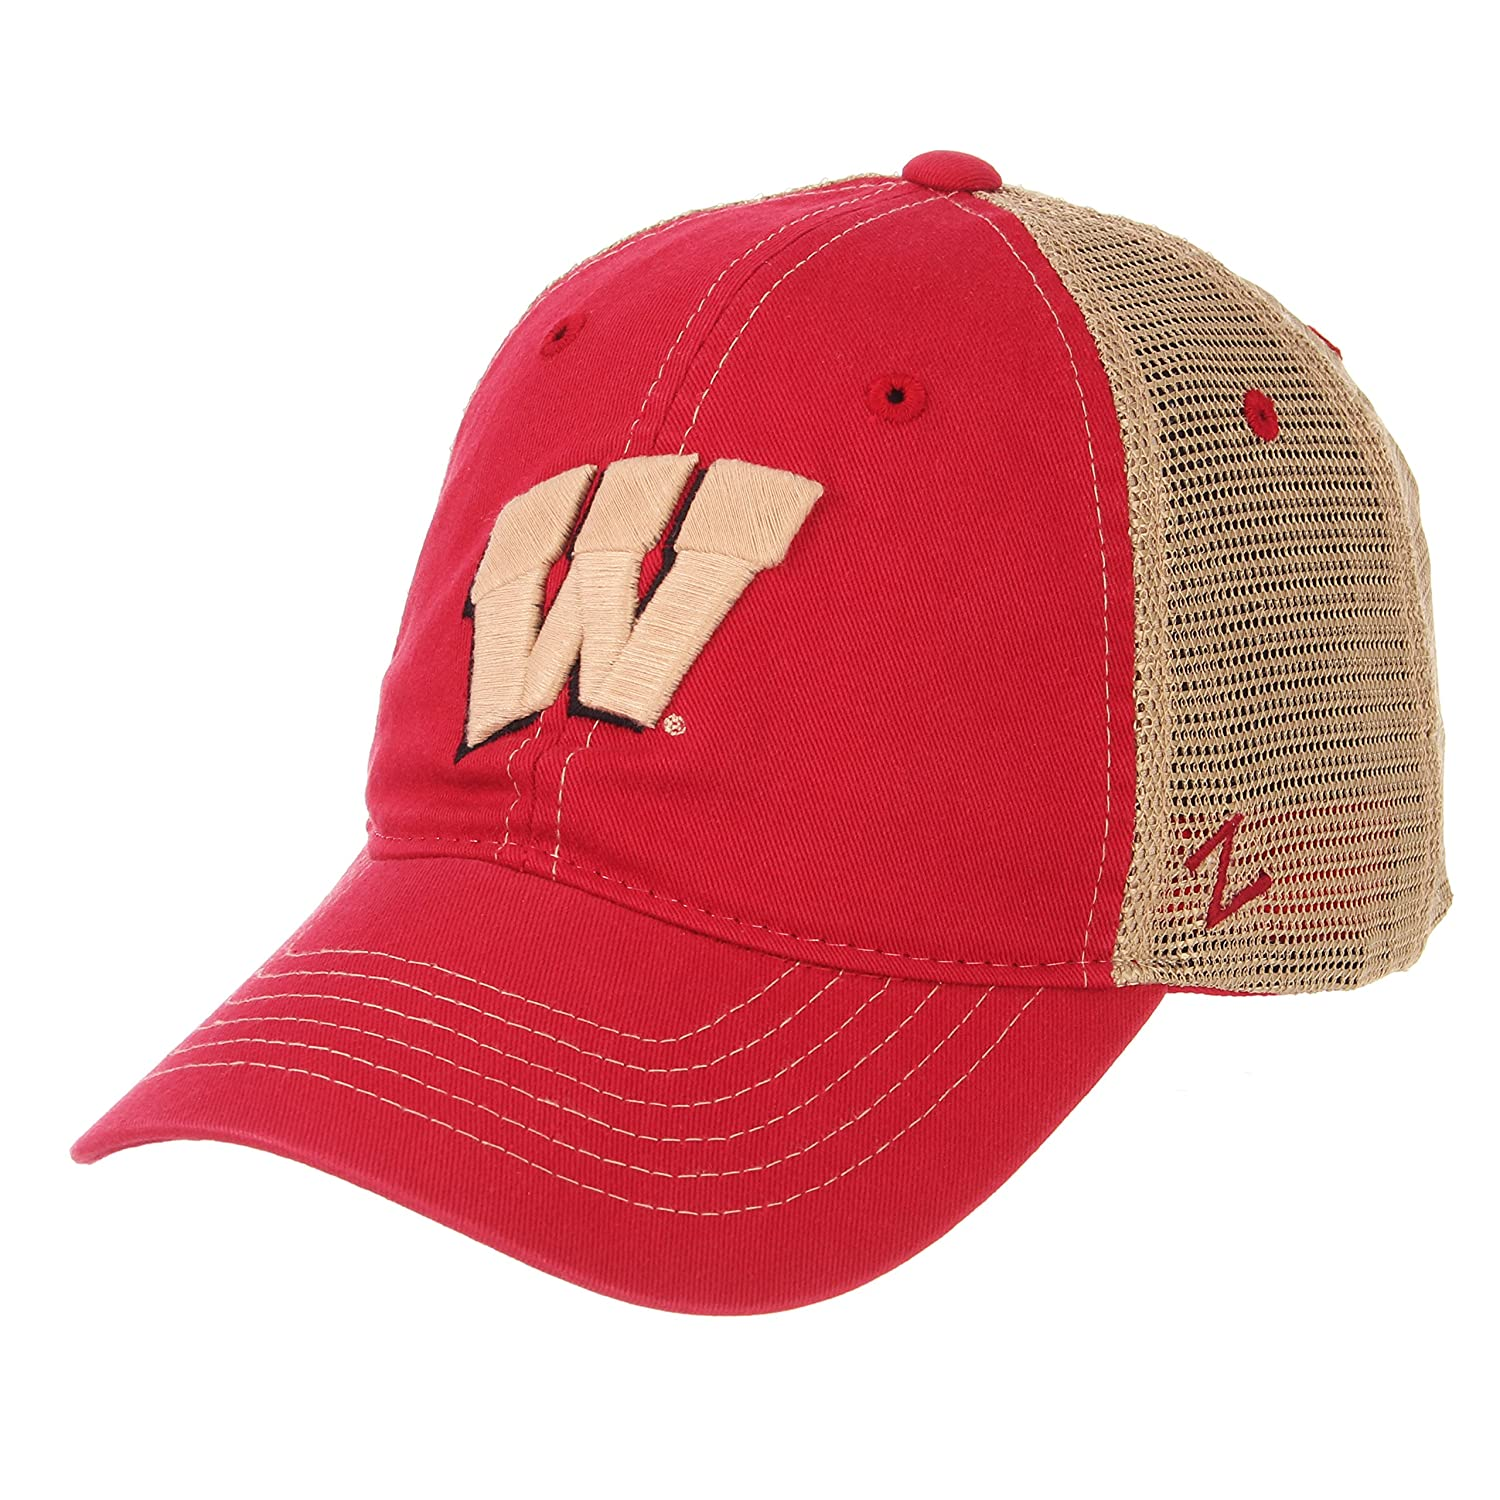 Institutionリラックスキャップ B0791SB7Z7 Adjustable Adjustable Adjustable|Wisconsin Badgers Badgers, mother:445ff50c --- acee.org.ar